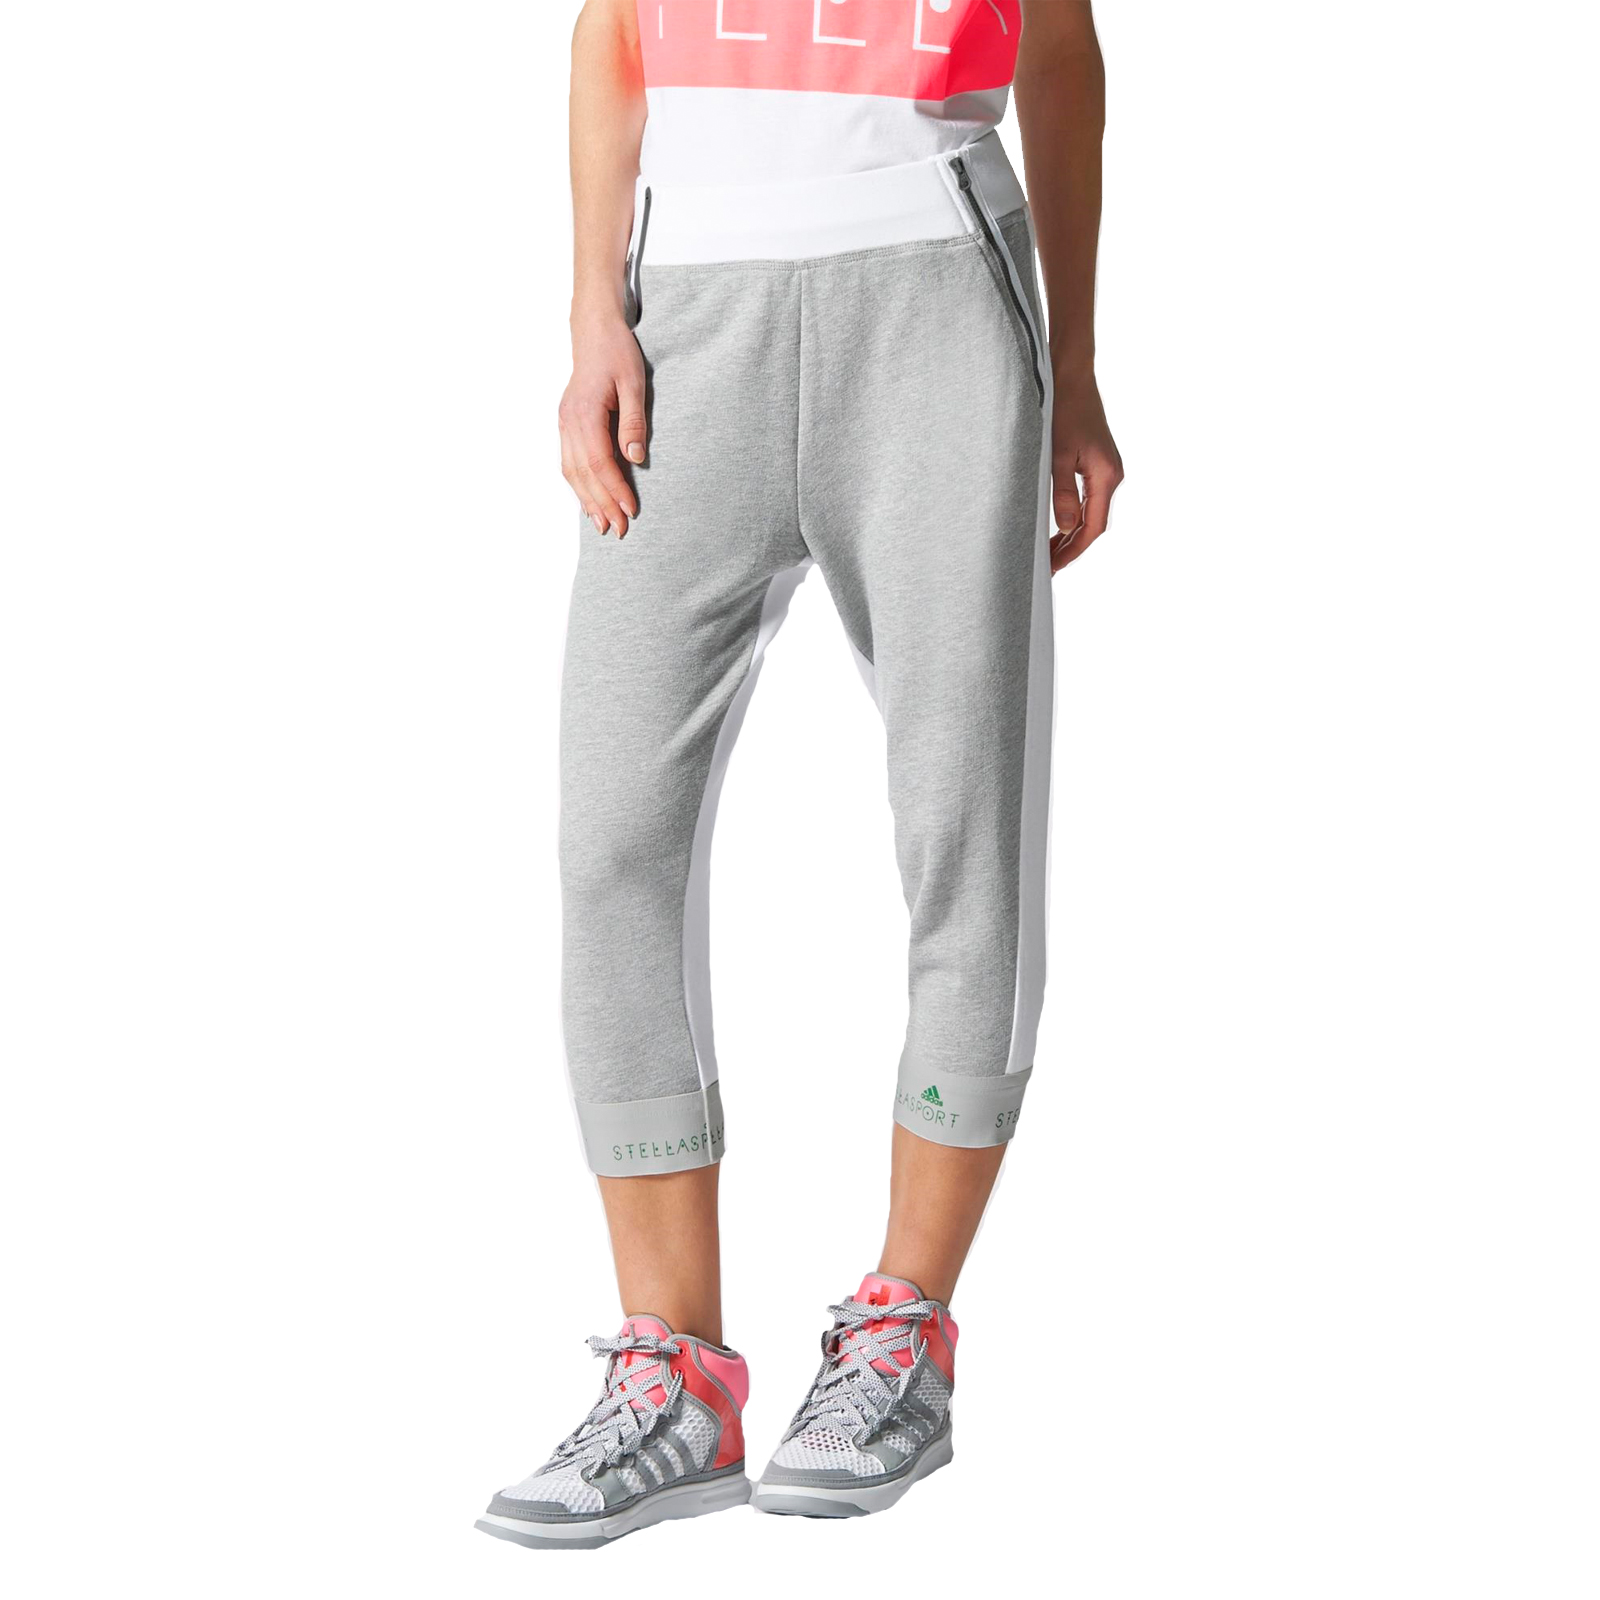 Luxury N3mqgii6 Authentic Adidas Womens Joggers